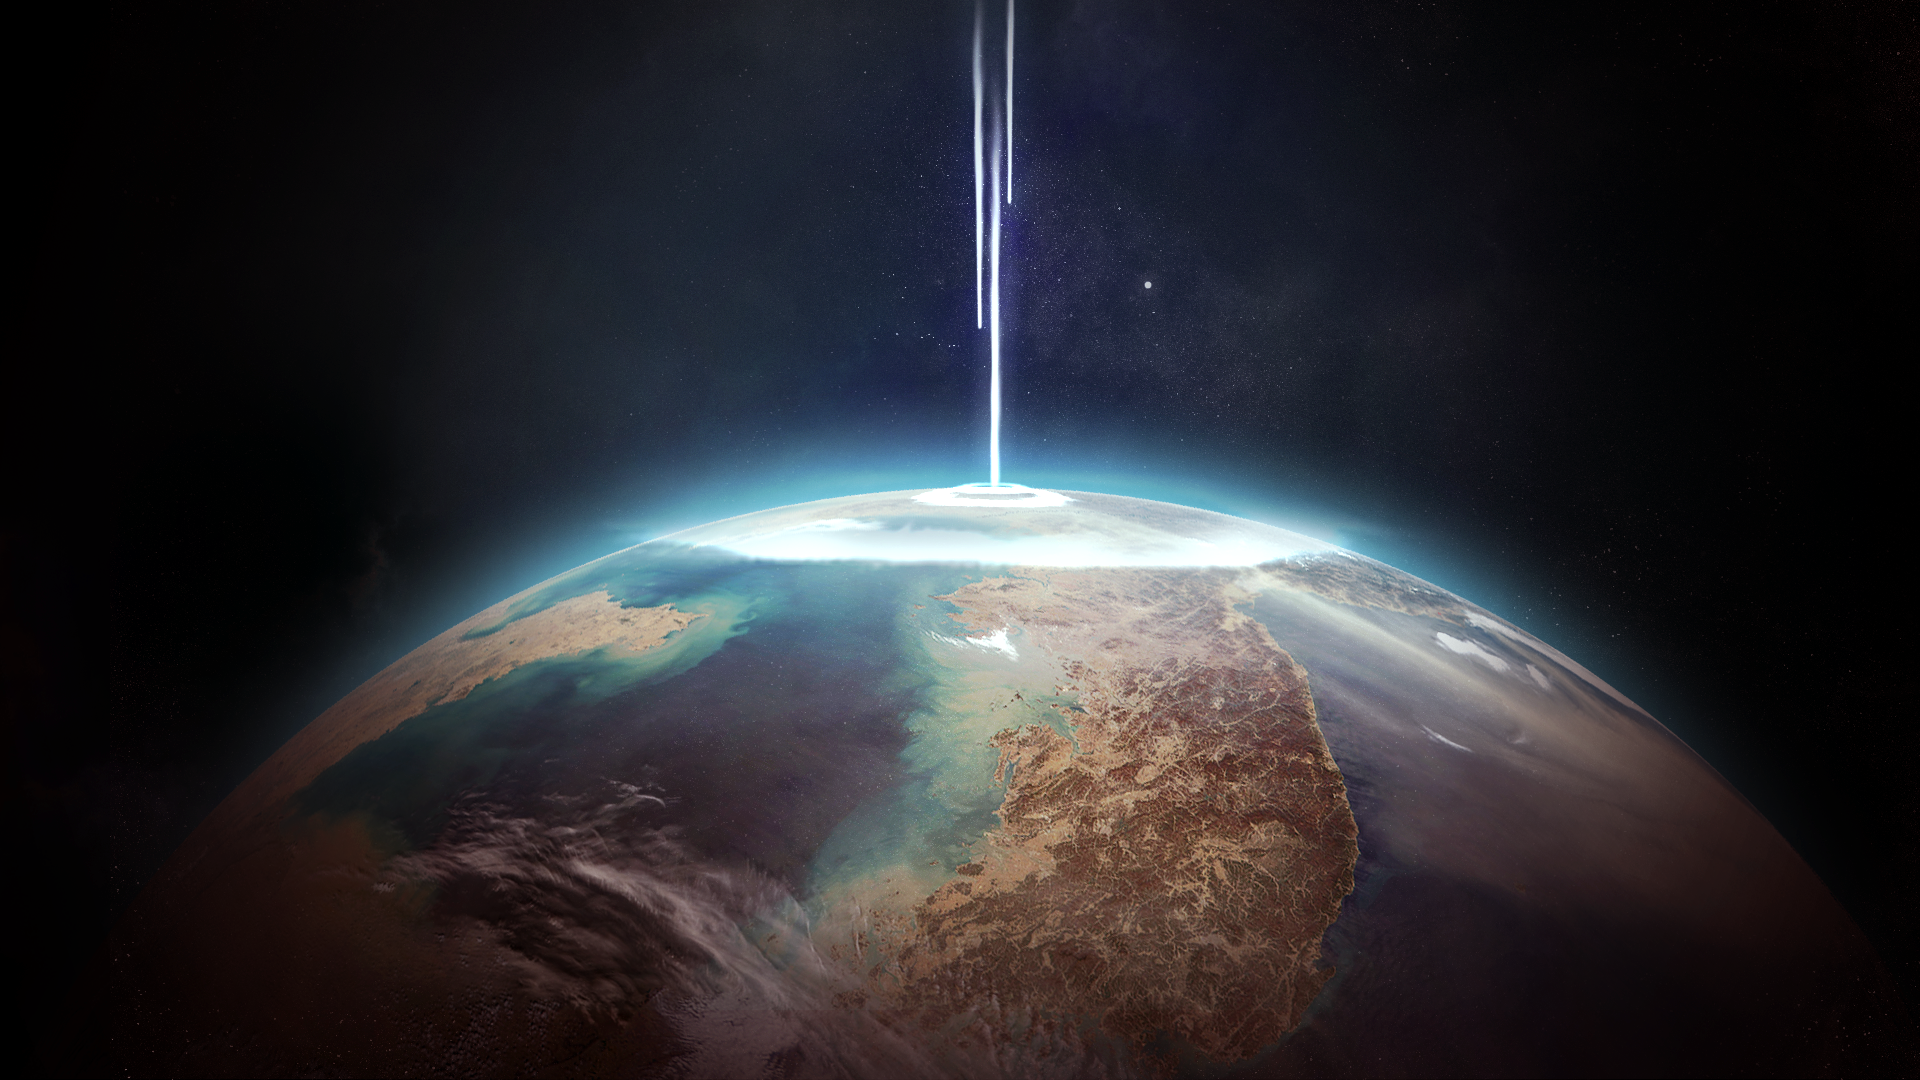 General 1920x1080 space Earth planet digital art science fiction space art stars